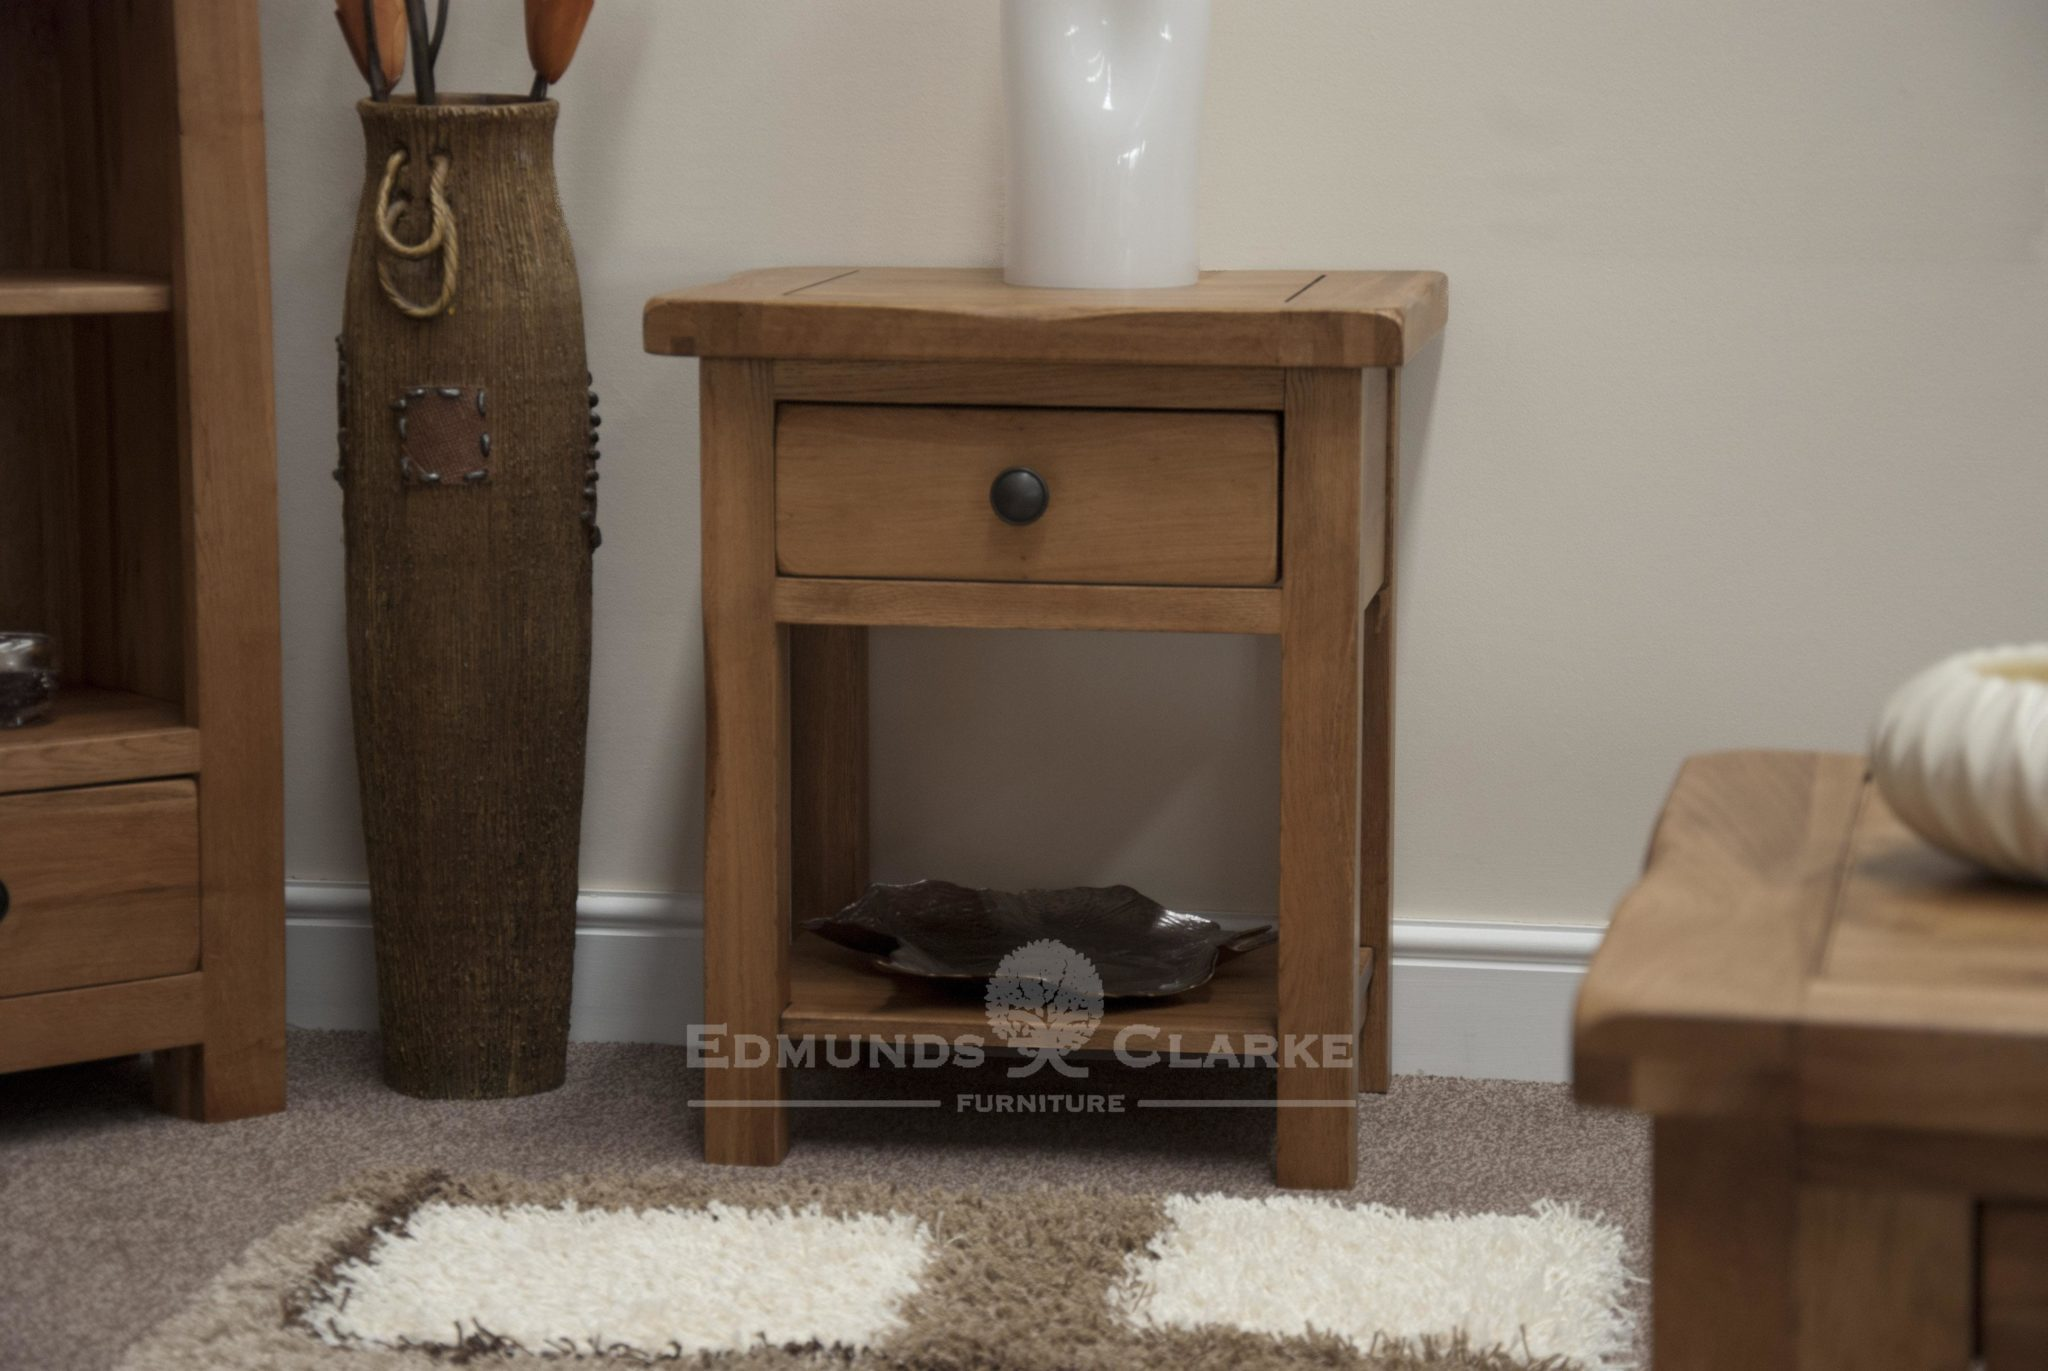 Lavenham solid oak sofa lamp table with 1 drawer and shelf under. pewter knobs as standard